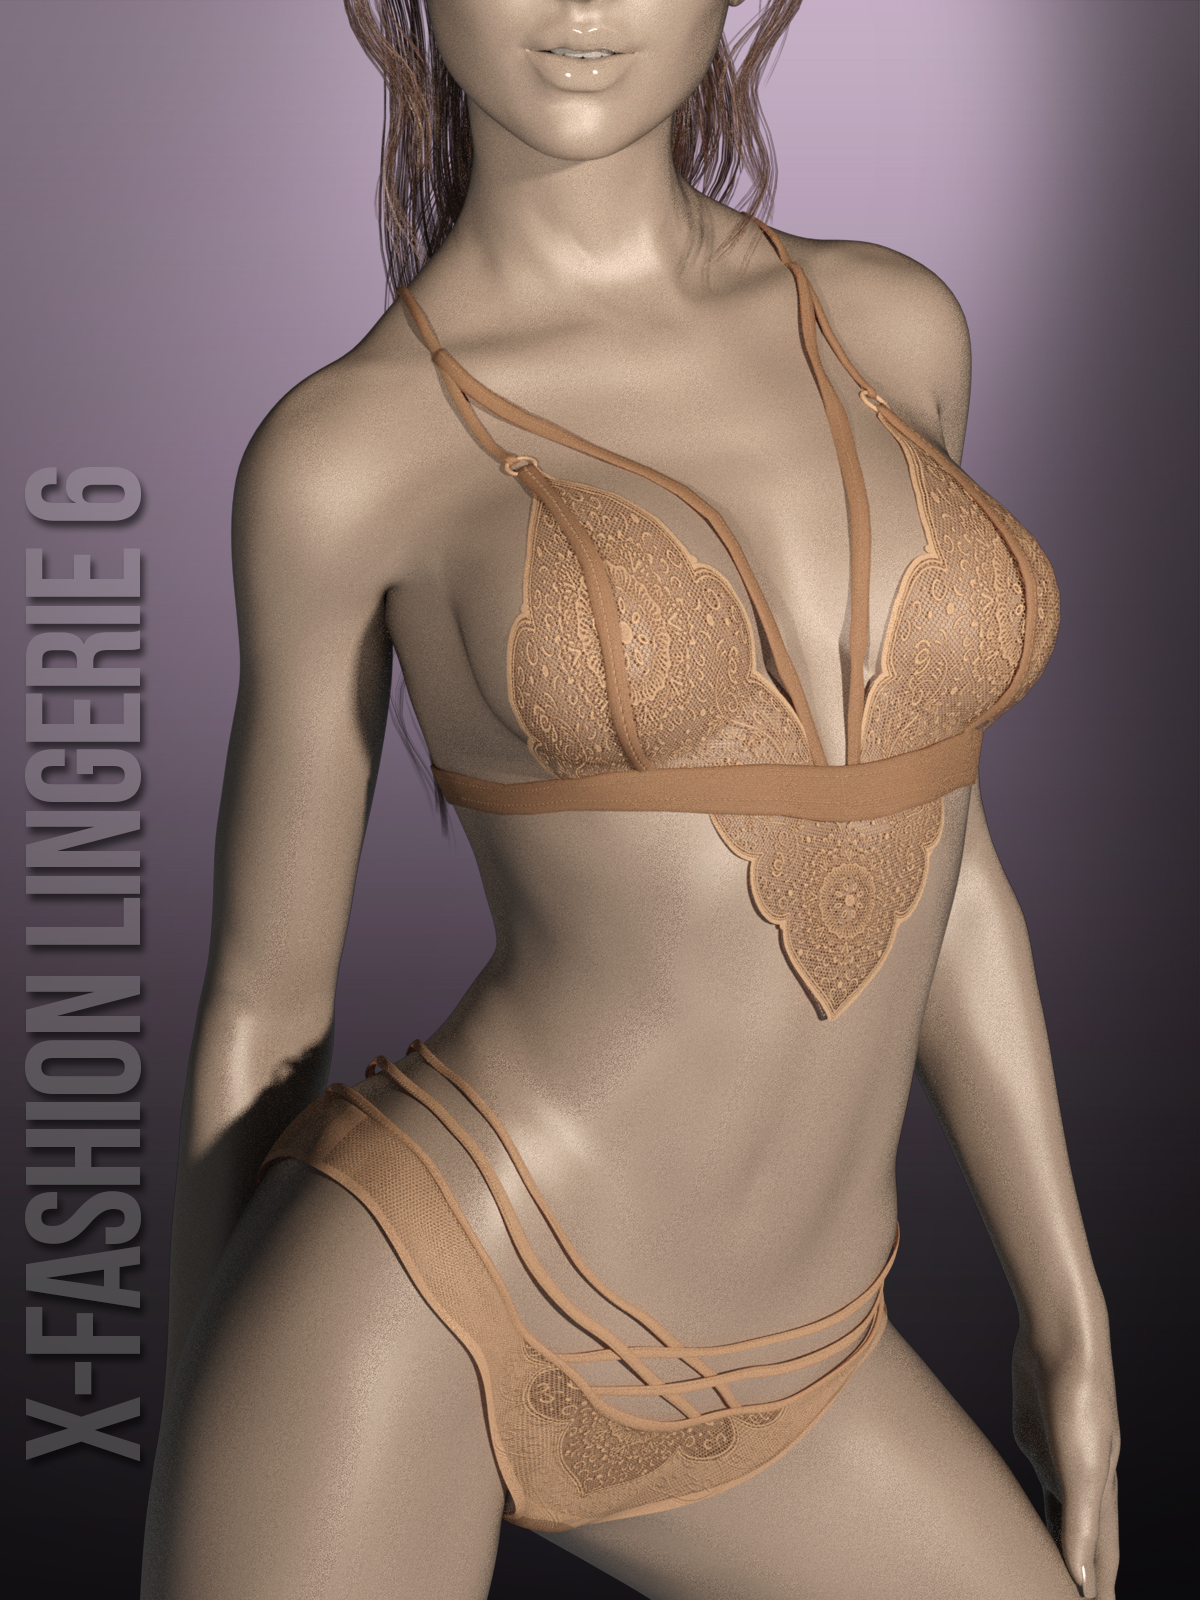 X-Fashion Lingerie6  for G3F